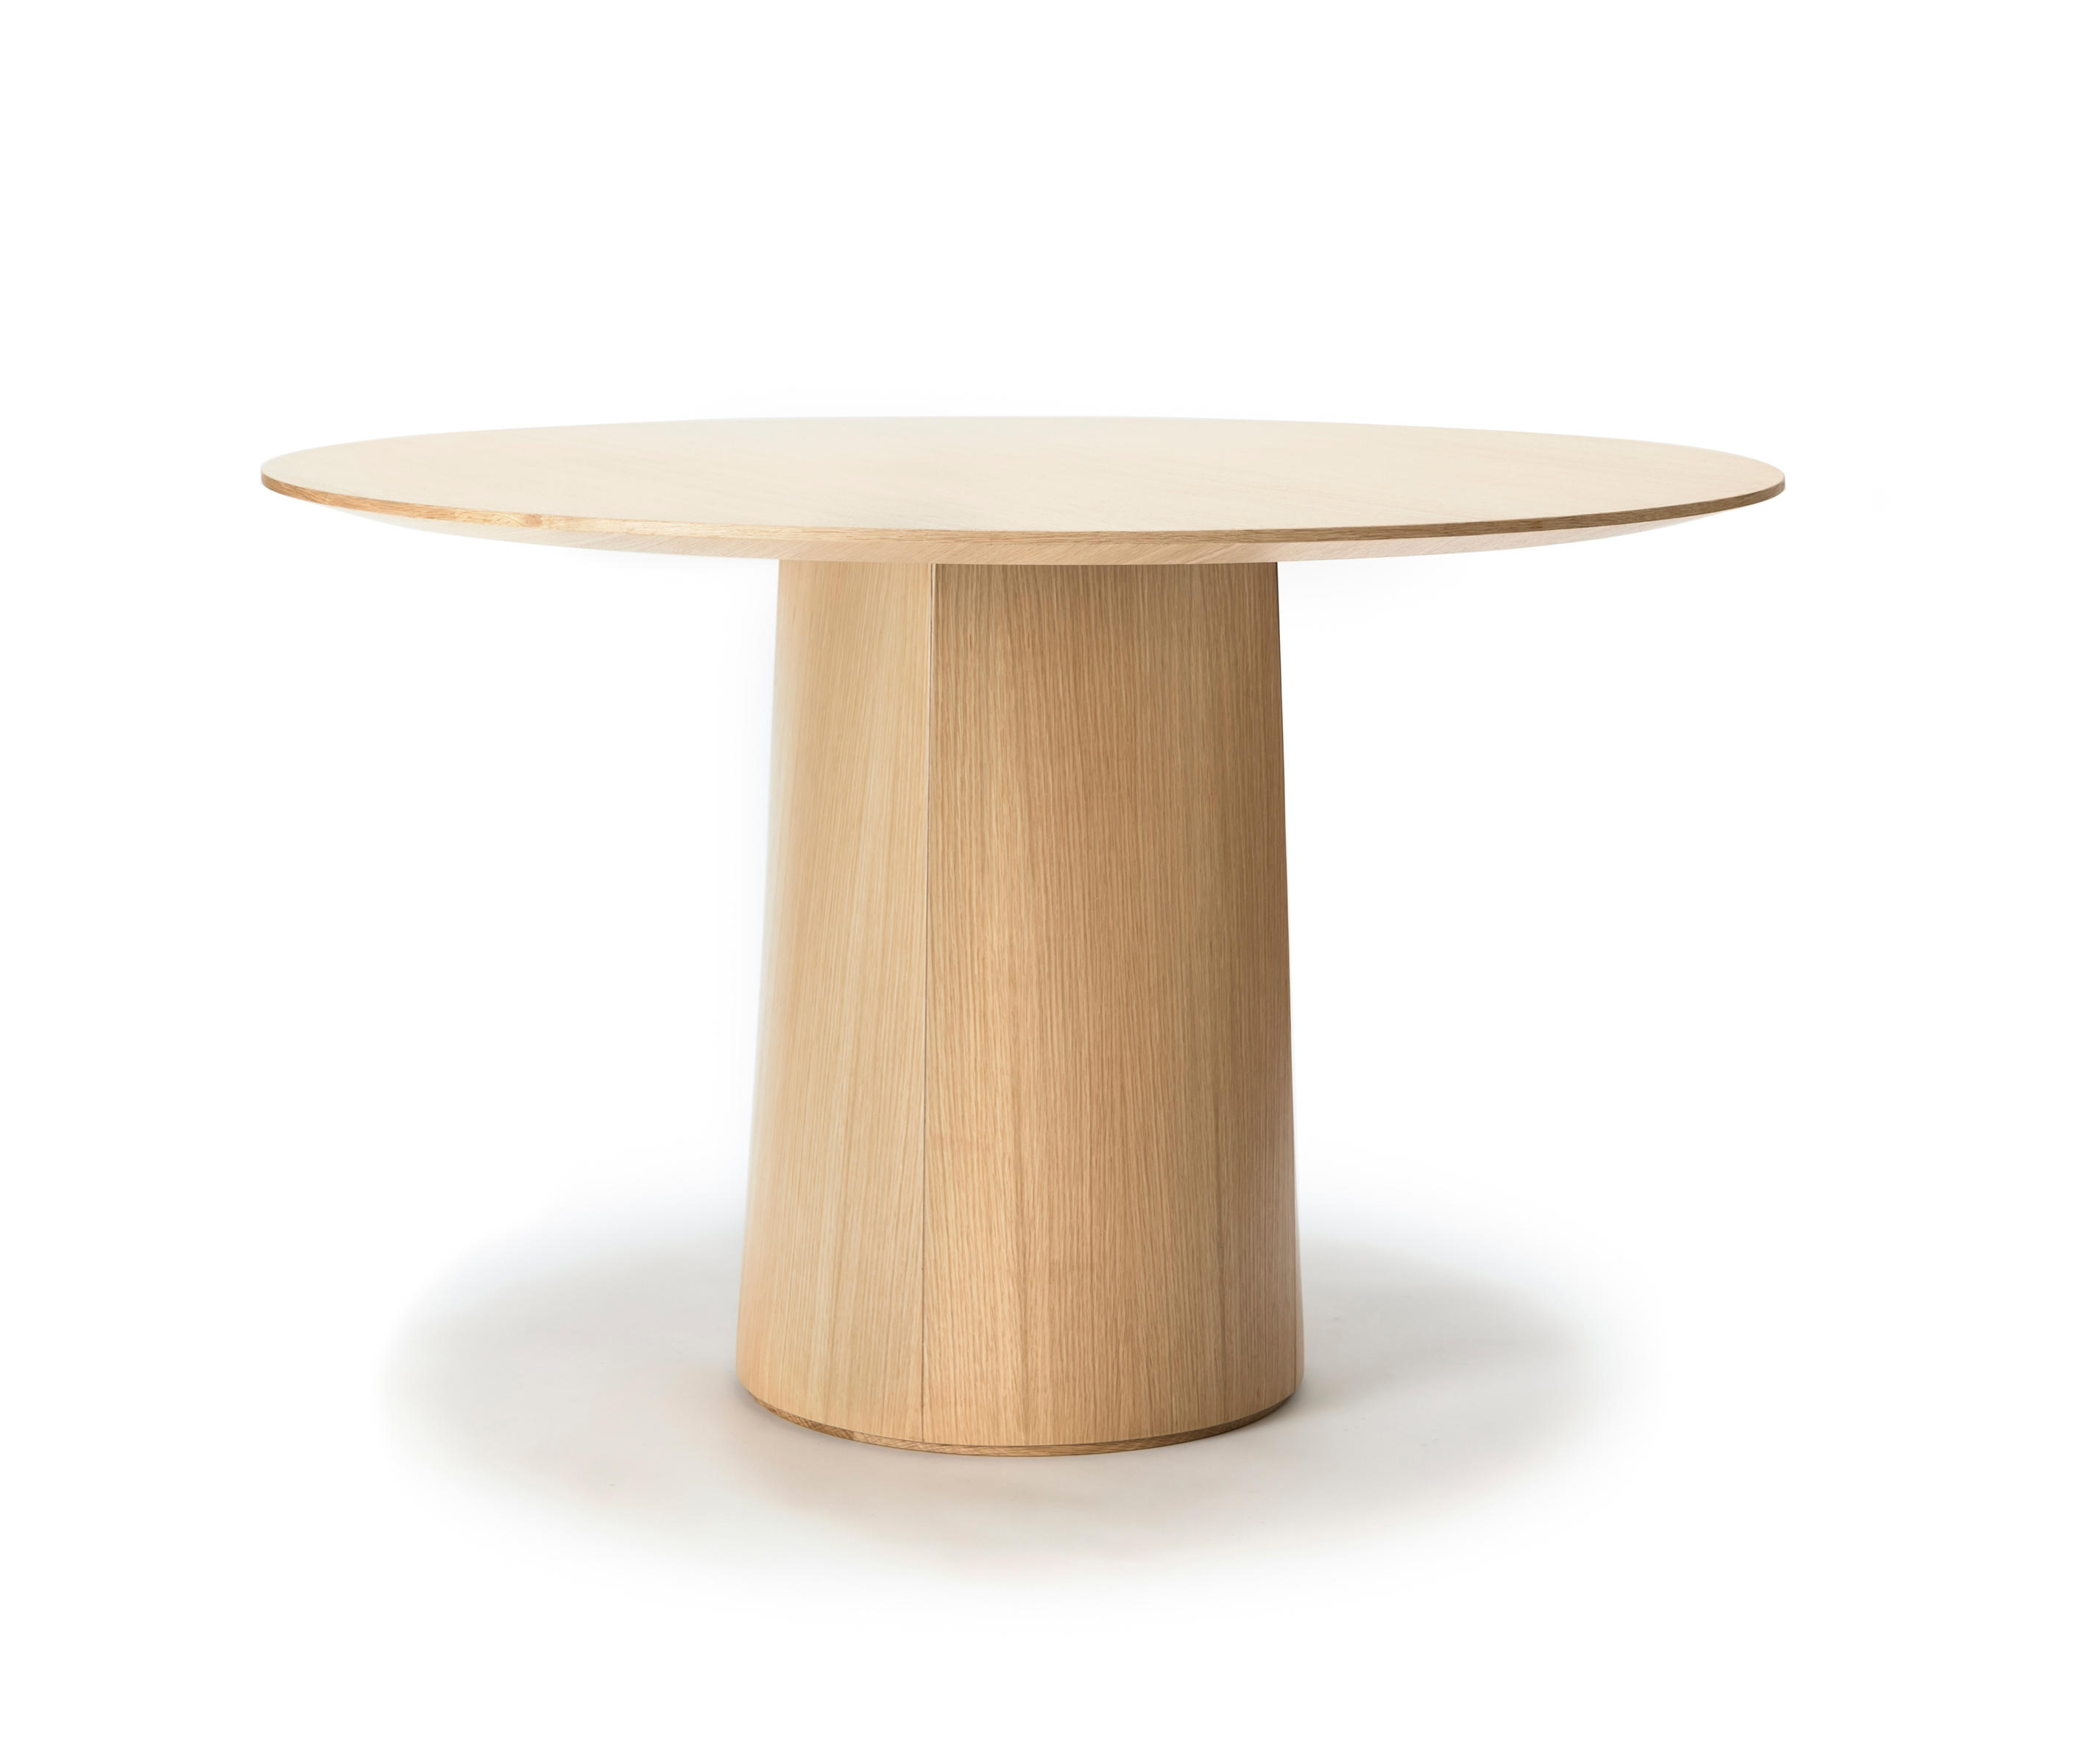 Inge Table by Feelgood Designs